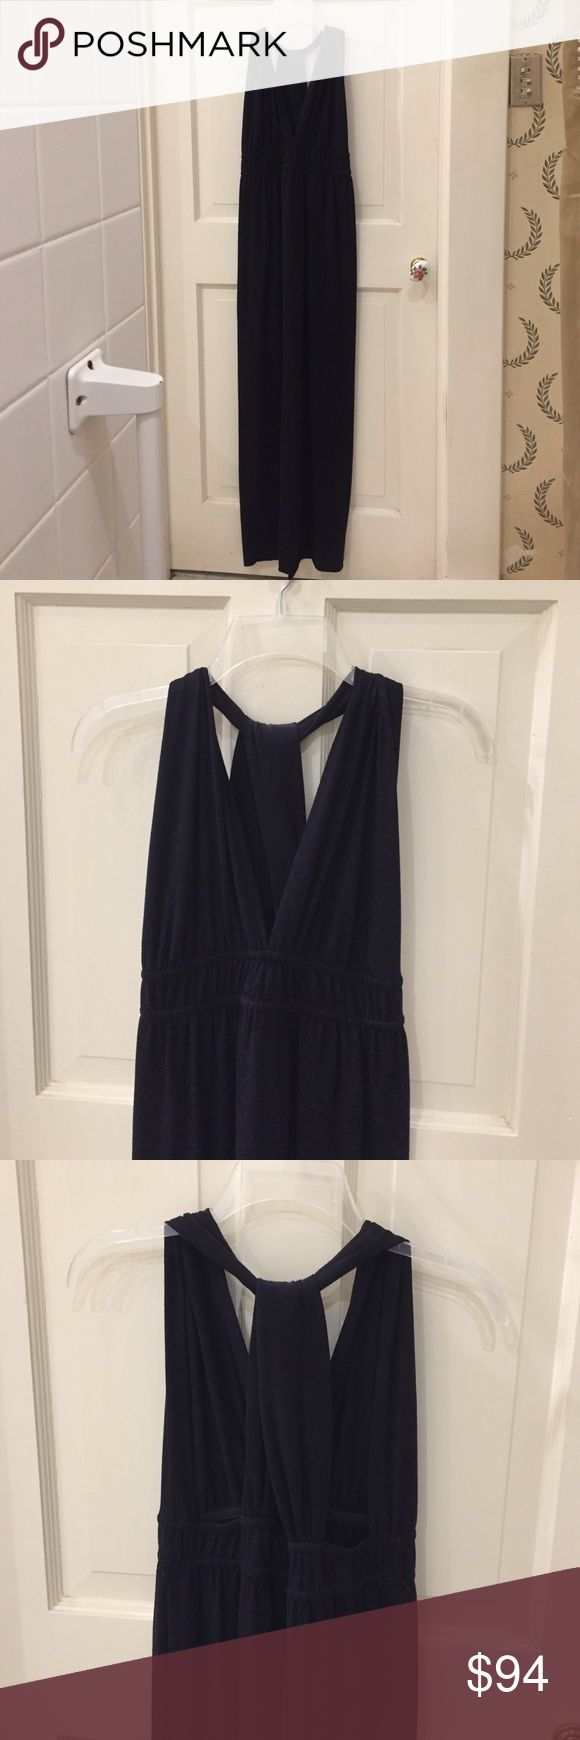 NWT Anthropologie Aquarius Long Navy Dress Beautiful long navy v-neck dress with silky navy and red reversible sash and crossover open back. 60% polyester, 33% rayonne, 7% spandex. Anthropologie Dresses